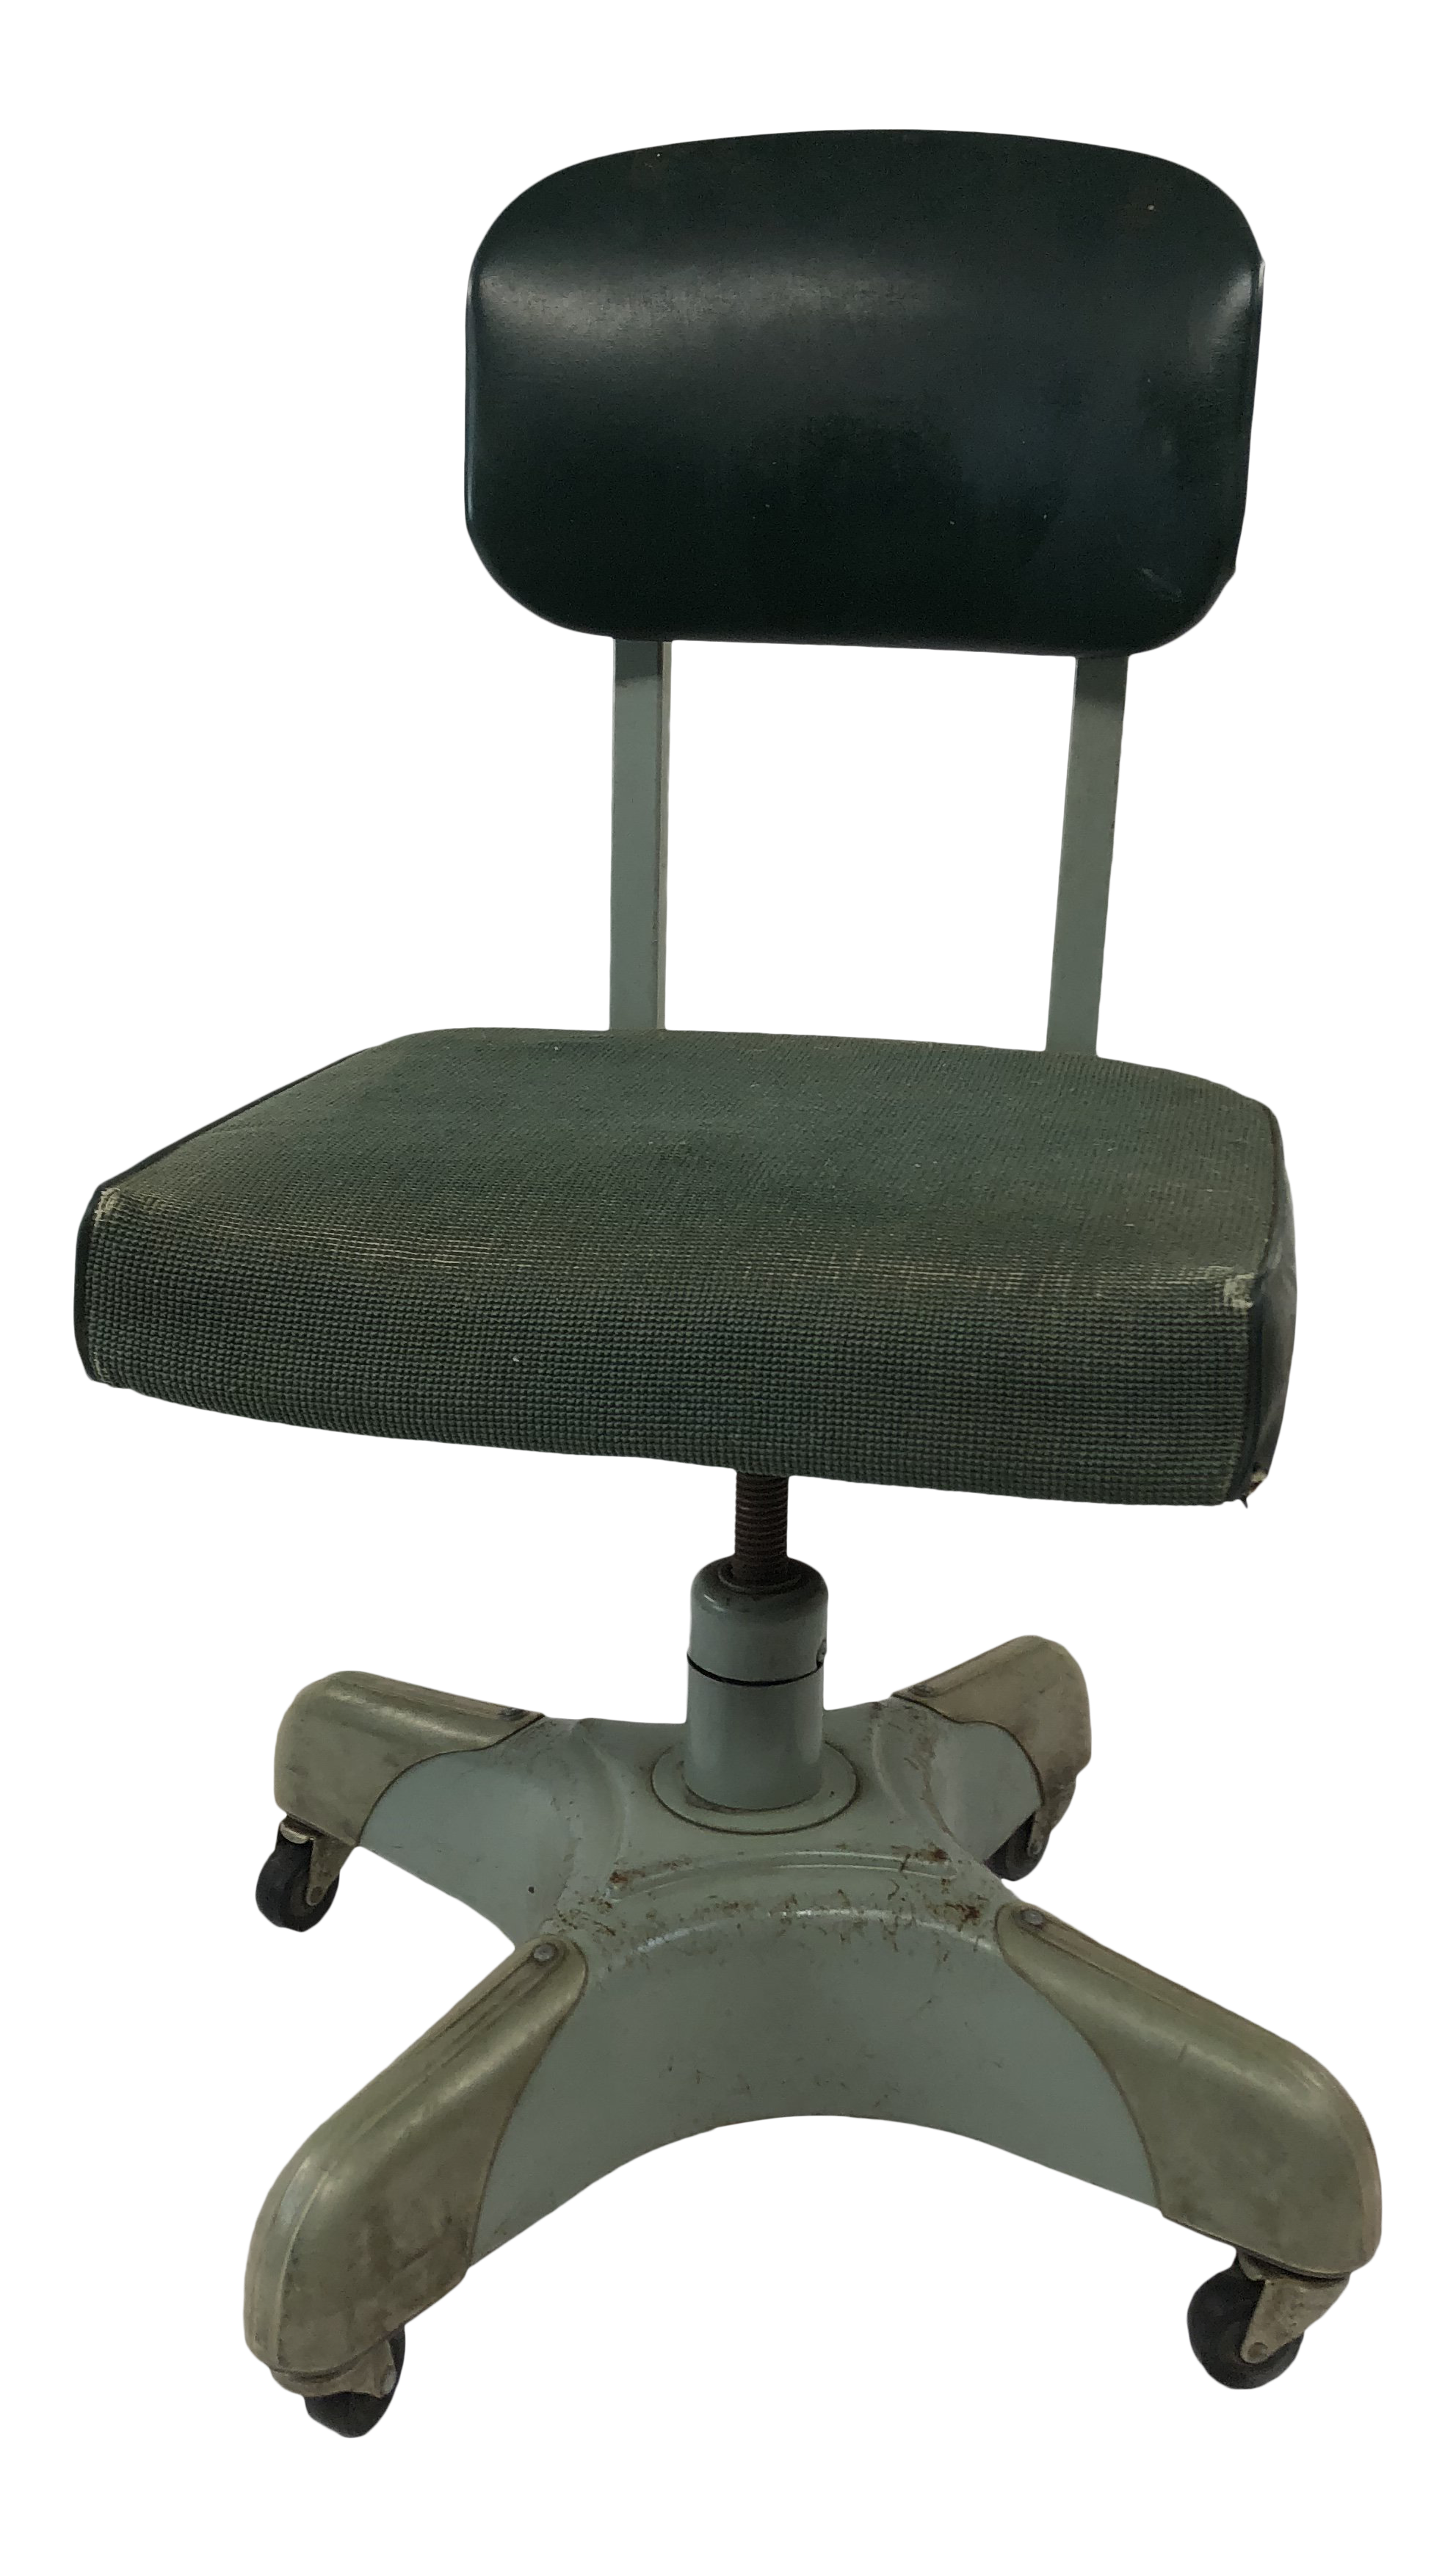 Vintage Metal Office Chair Tanker Vintage Industrial Metal Office Chair With Green Upholstery By Harter For Sale Chairish Vintage Industrial Metal Office Chair With Green Upholstery By